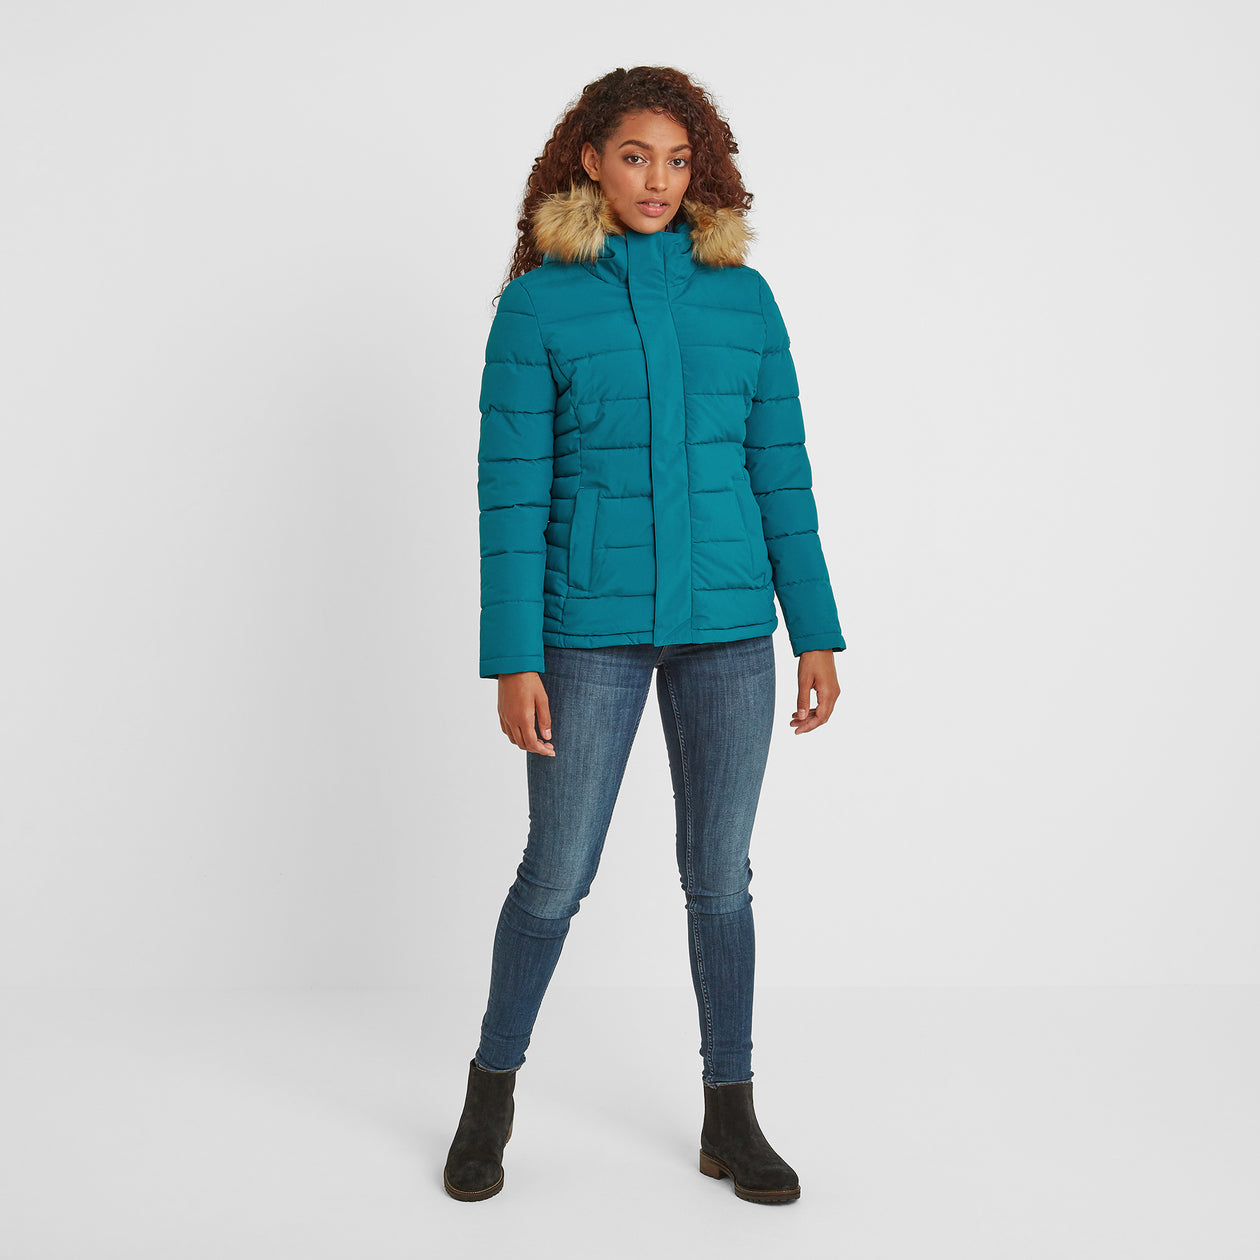 Helwith Womens Insulated Jacket - Pacific Blue image 4